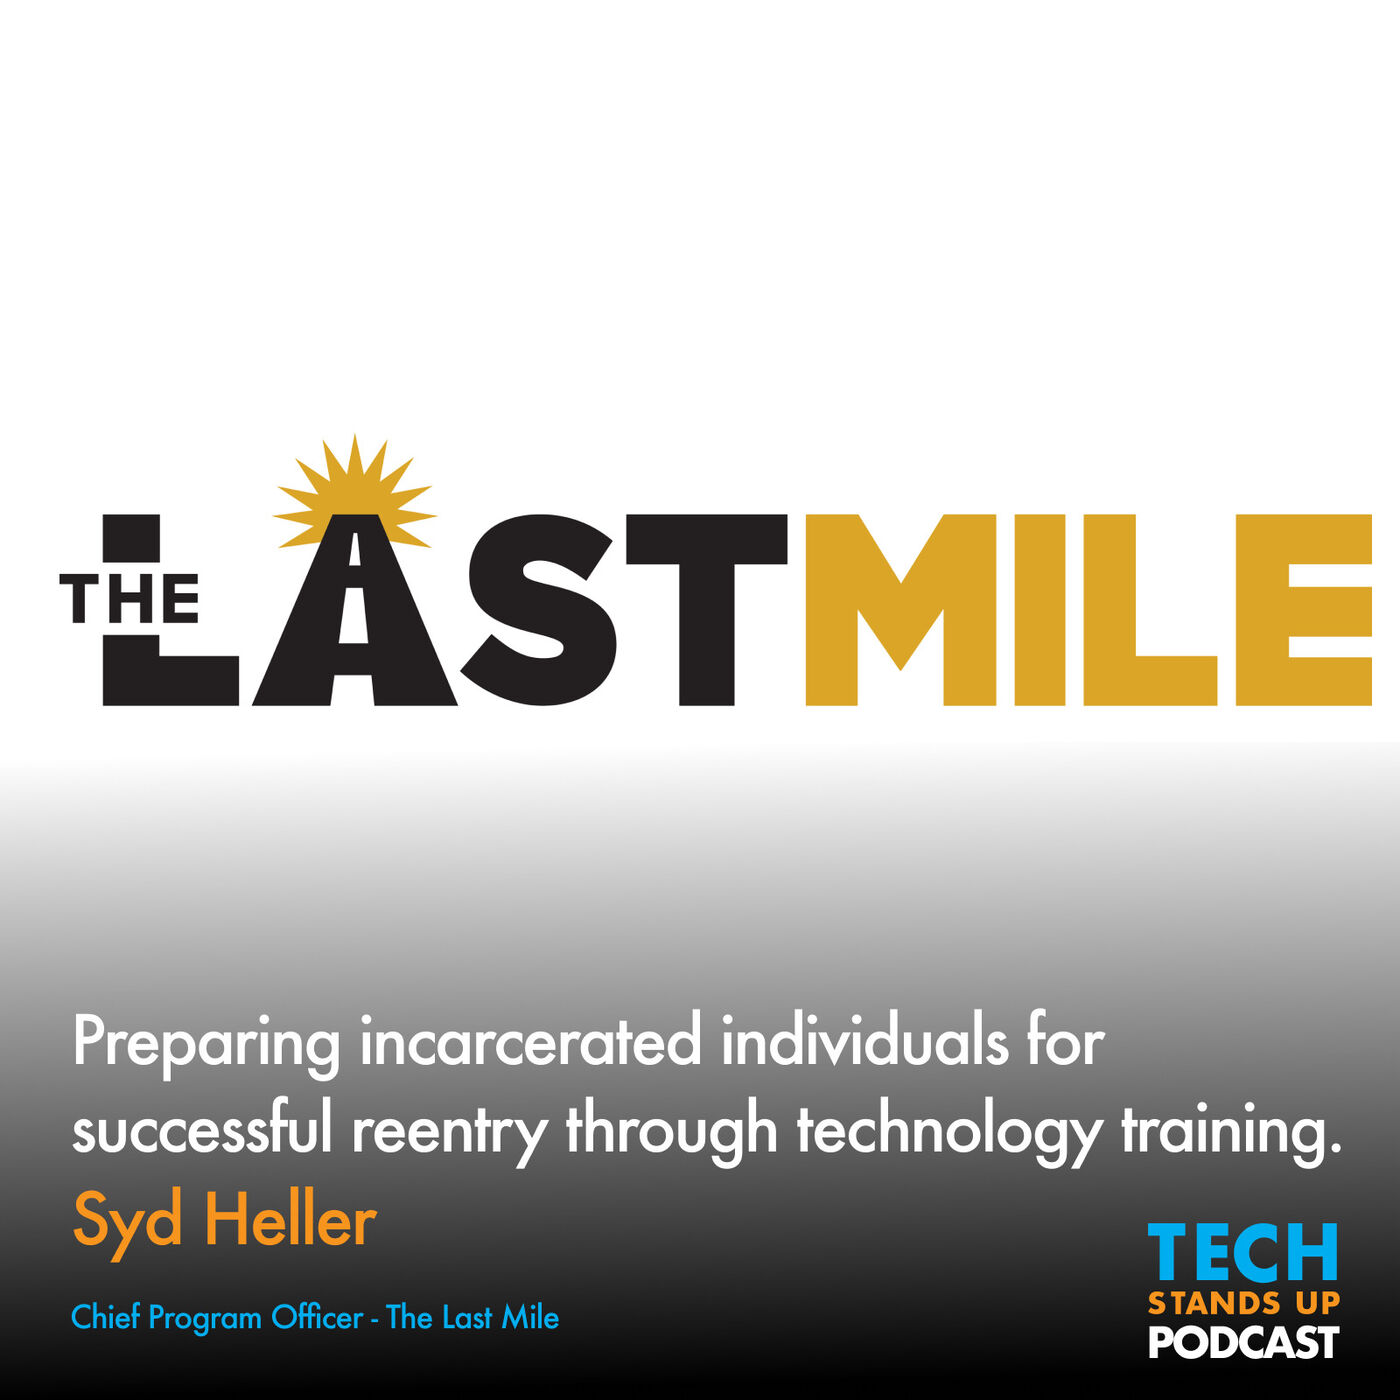 Syd Heller: Preparing incarcerated individuals for successful reentry through technology training.